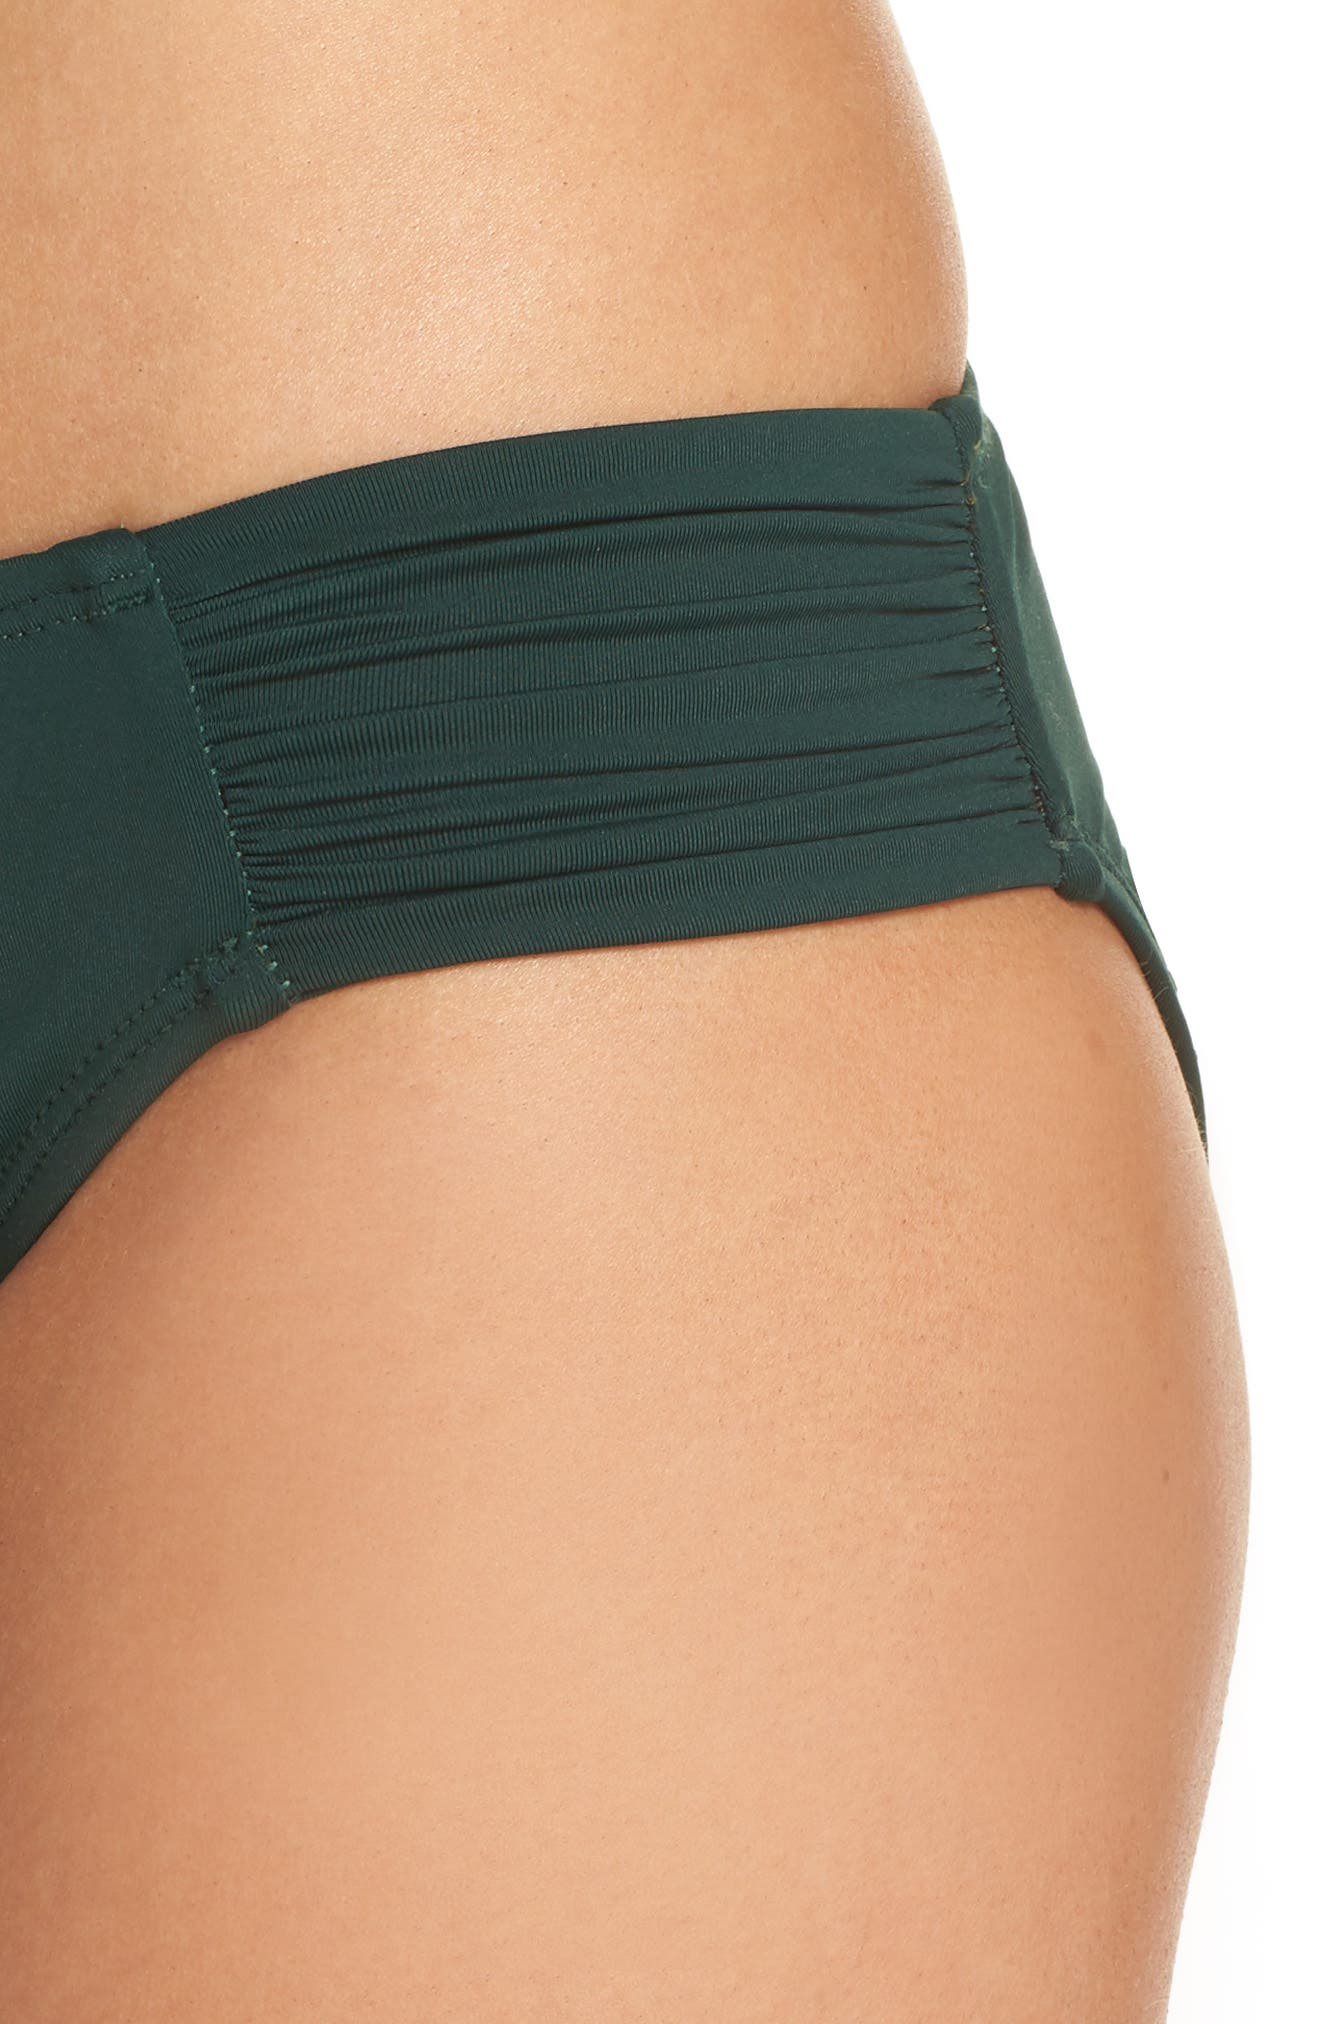 Island Goddess Hipster Bikini Bottoms,                             Alternate thumbnail 53, color,